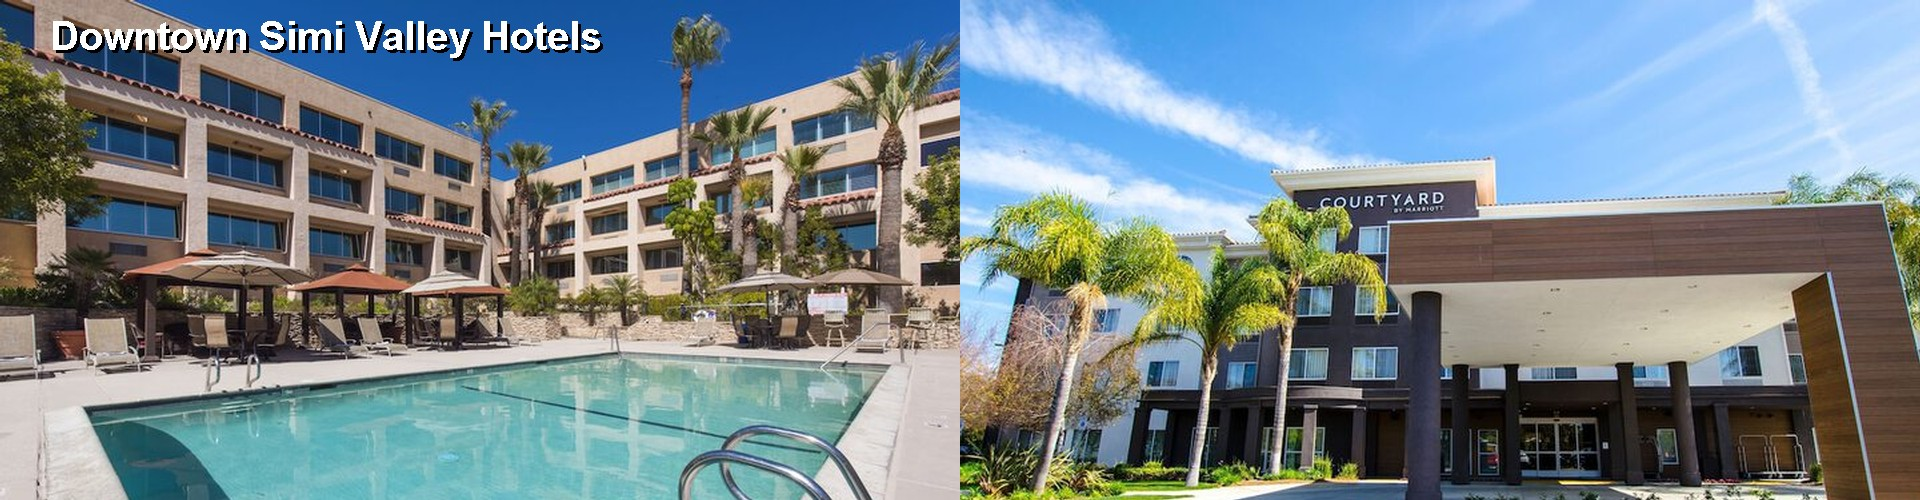 5 Best Hotels near Downtown Simi Valley